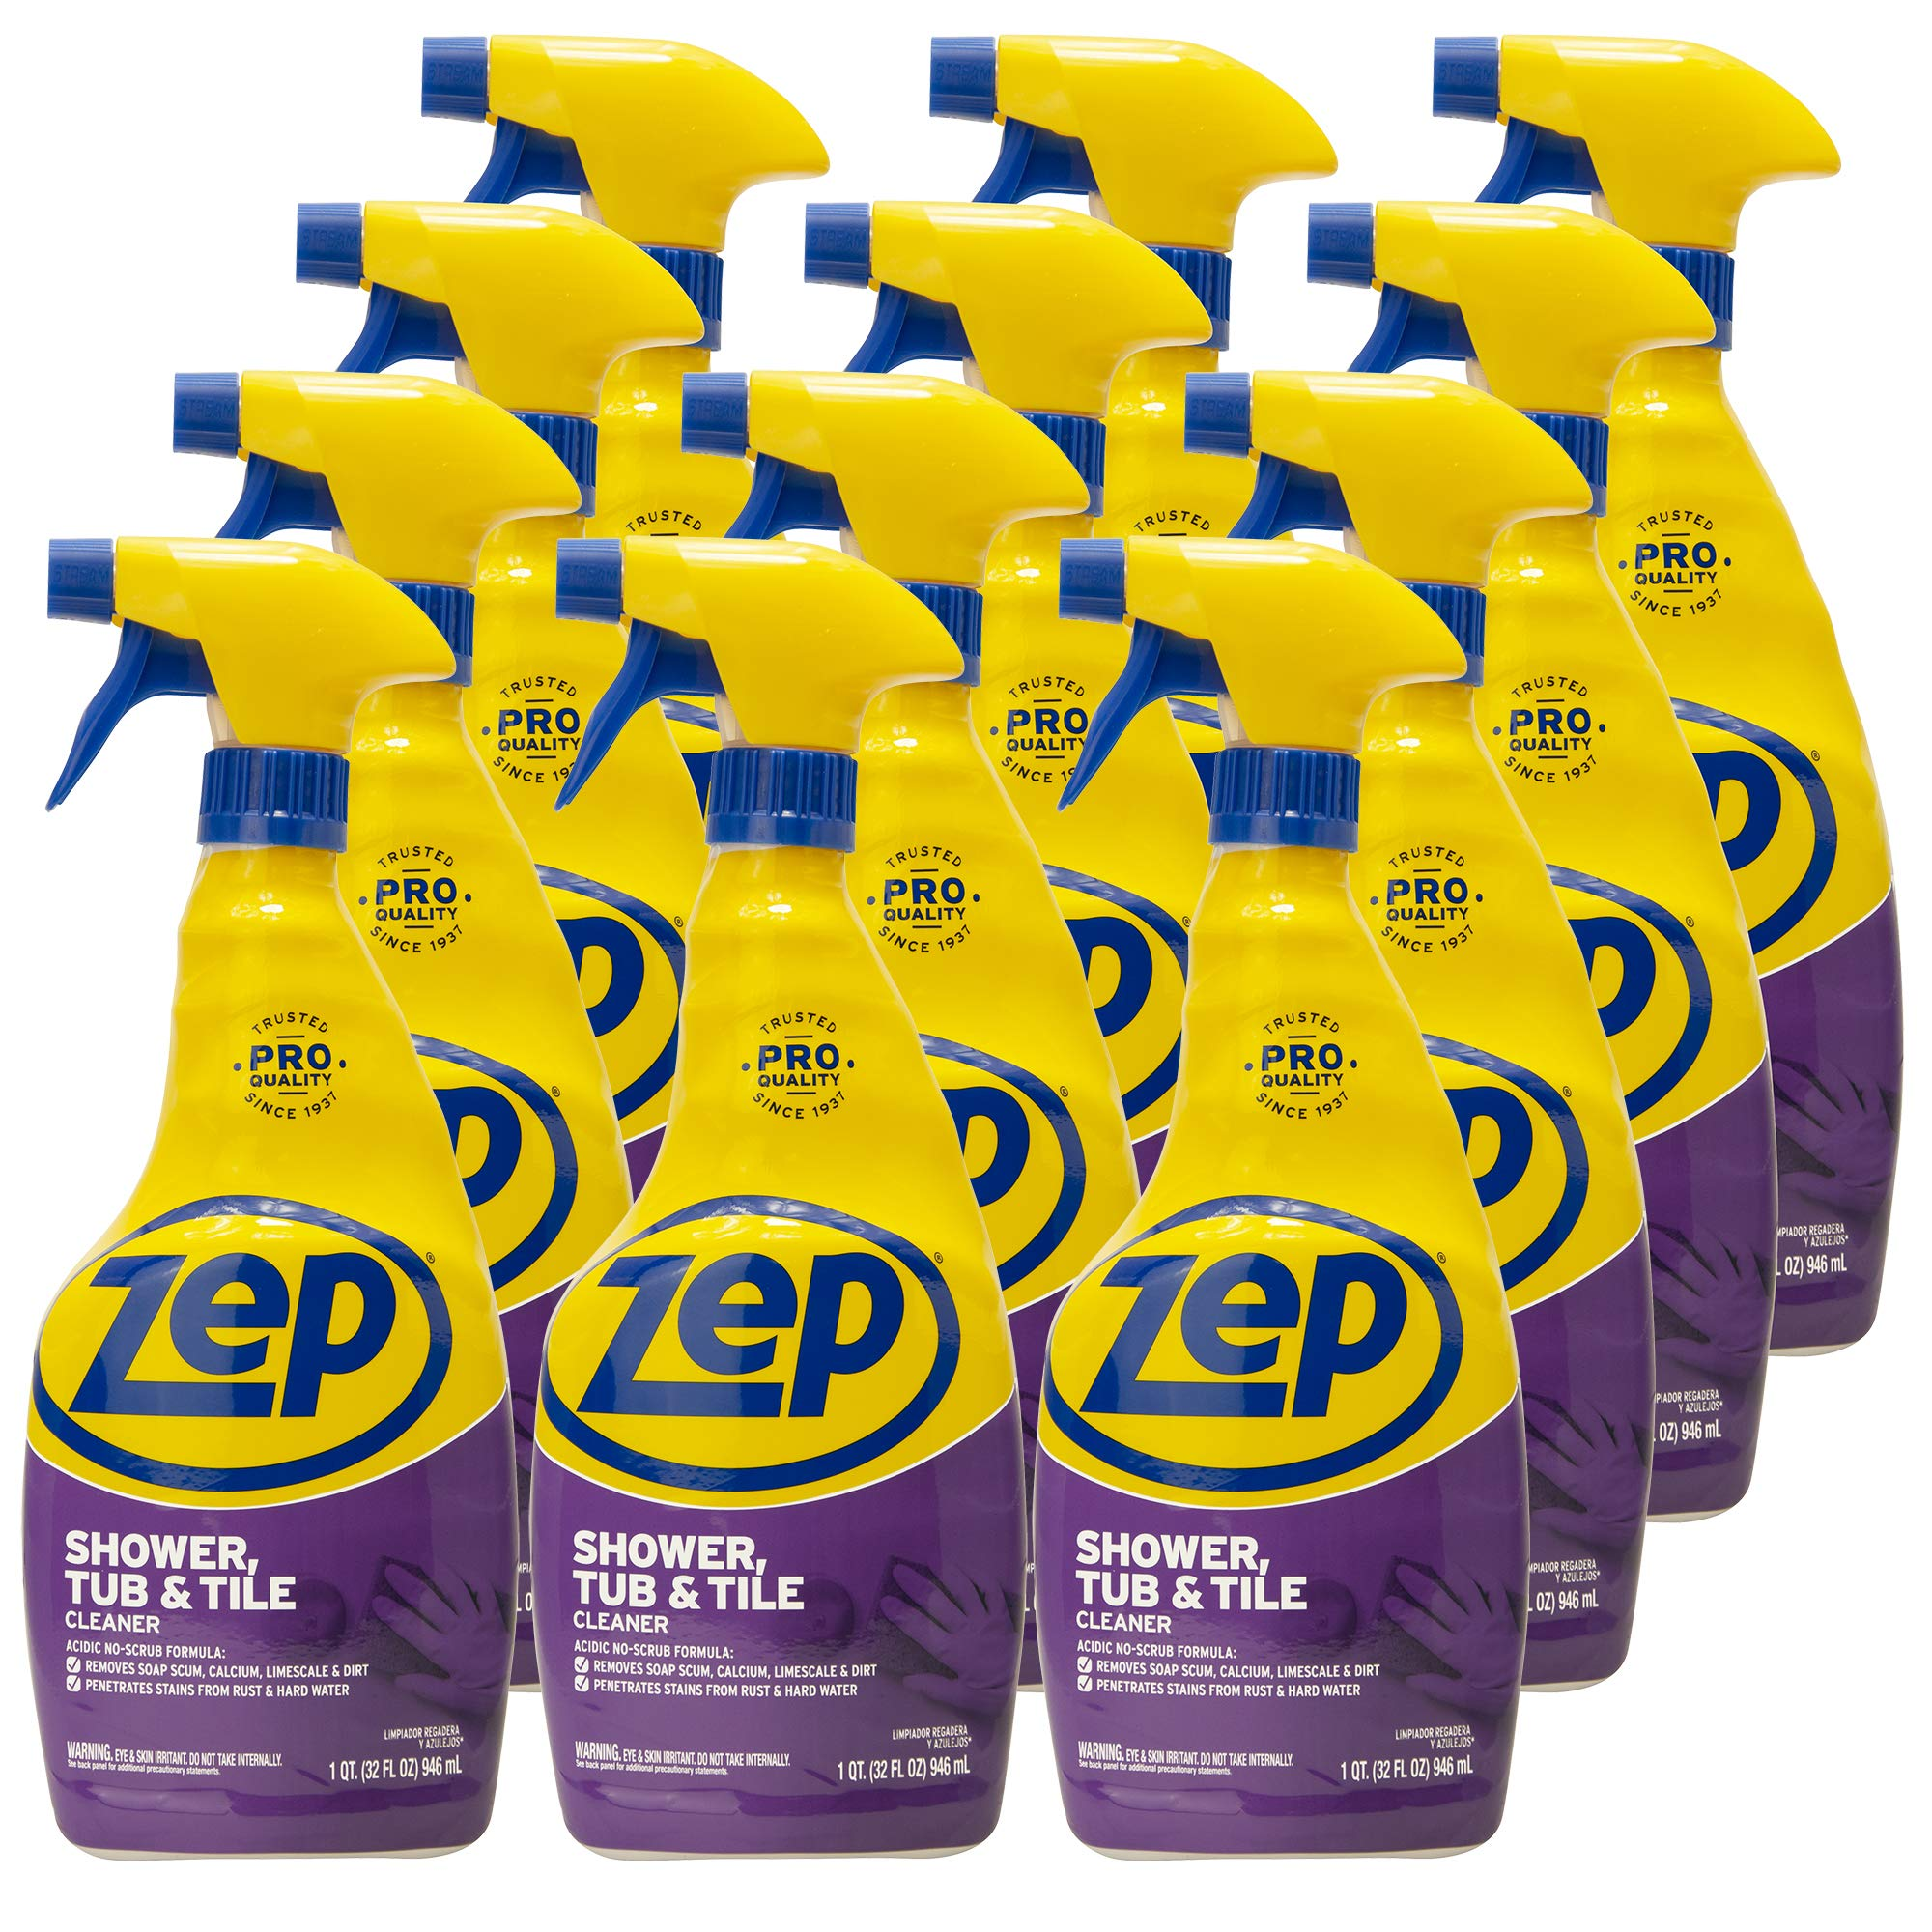 Zep Shower Tub and Tile Cleaner 32 ounce ZUSTT32PF (Cases of 12)